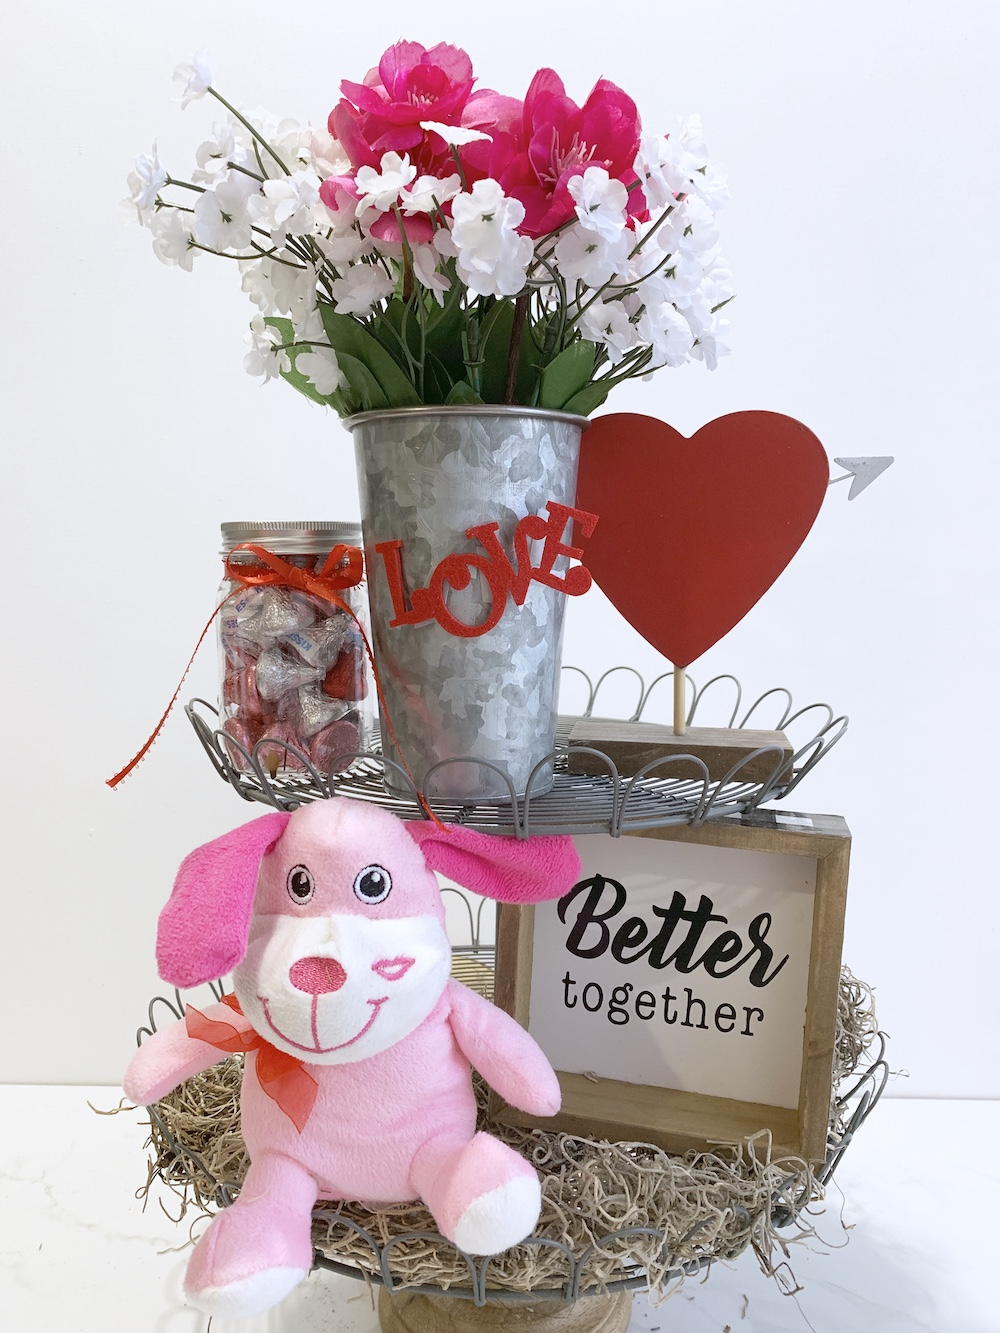 Valentine's Day Home Decor Better Together Farmhouse Stand #Farmhouse #Affordable #SimpleDecor #QuickAndEasy #BudgetFriendly #ValentinesDay #DIY #StValentinesDecor #FarmhouseDecor